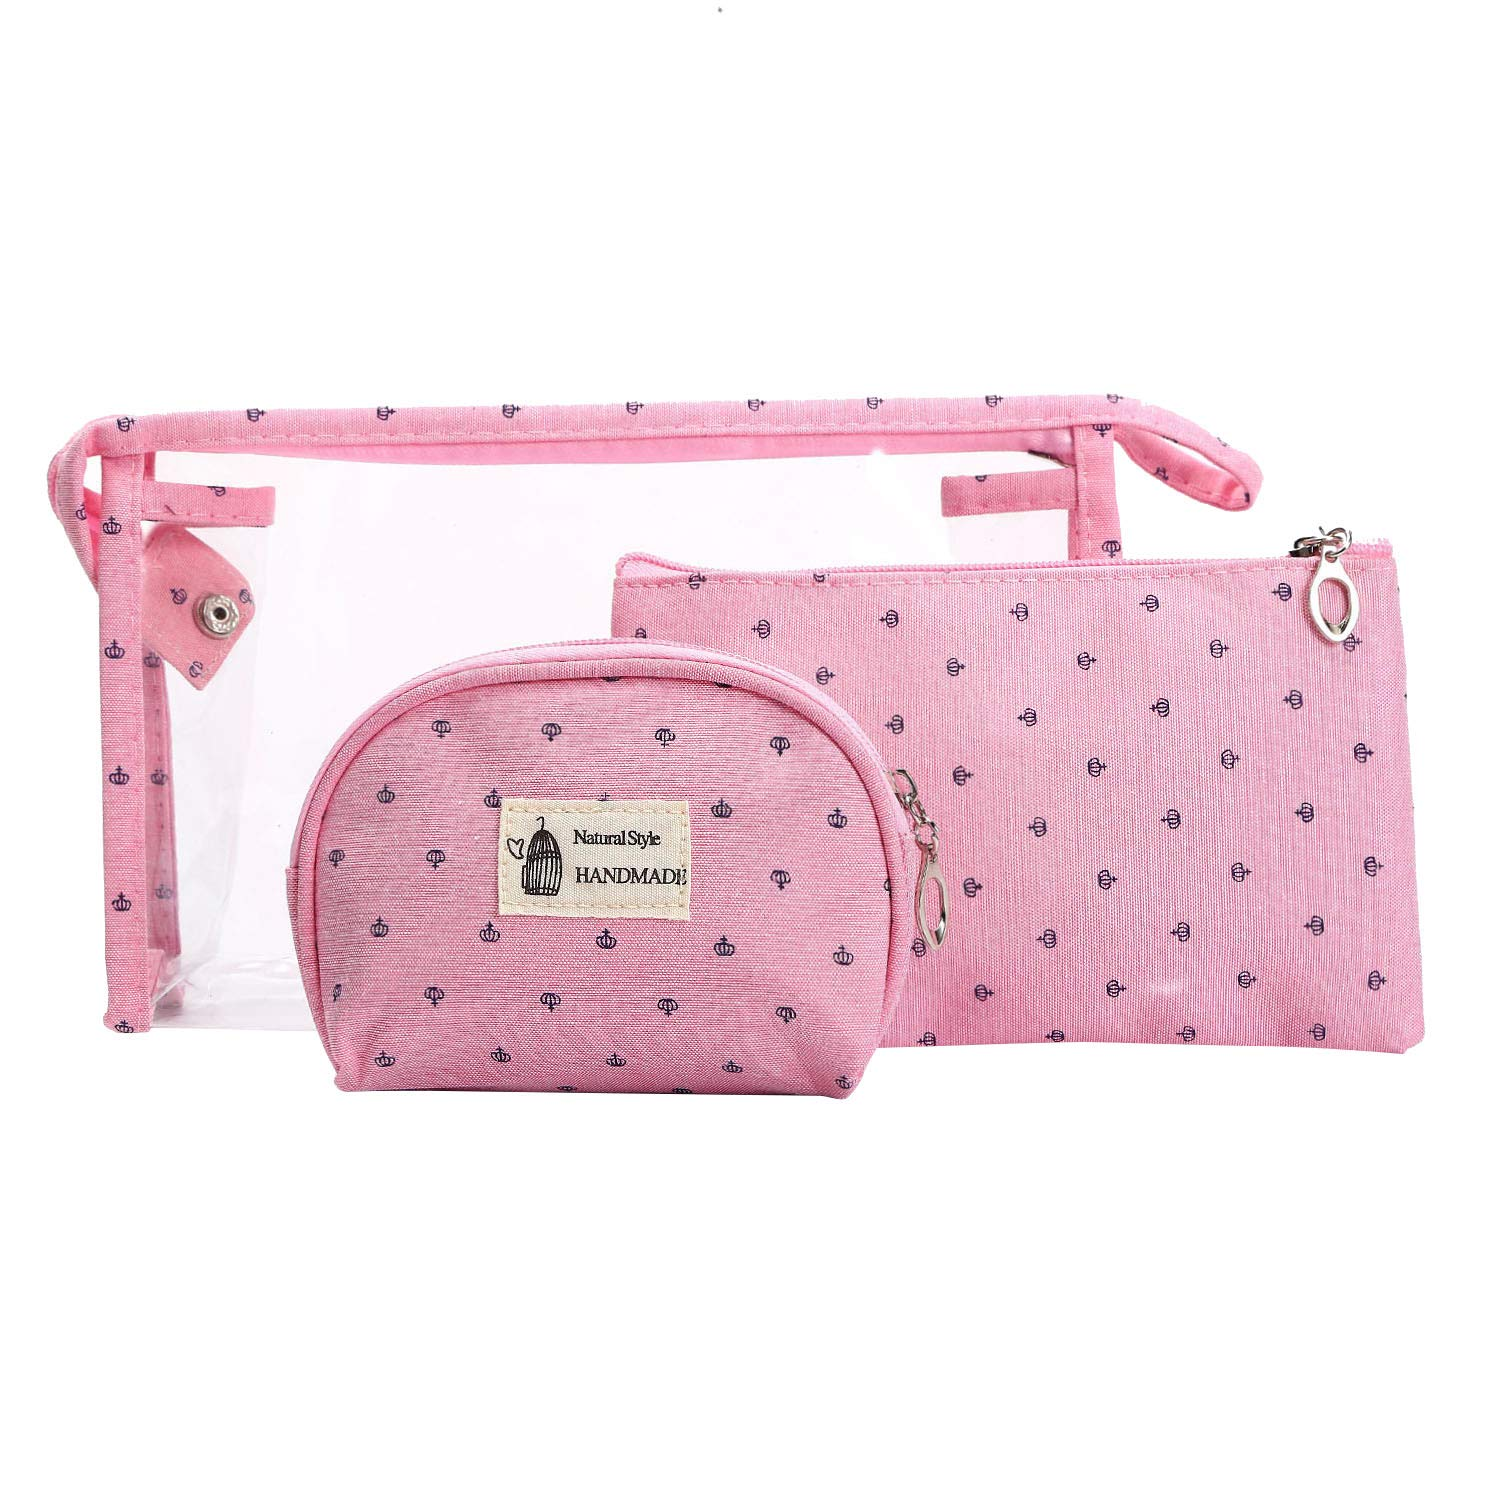 3d5046374916 Amazon.com : HOYOFO Portable Cosmetic Bags Set of 3 Different Sizes ...